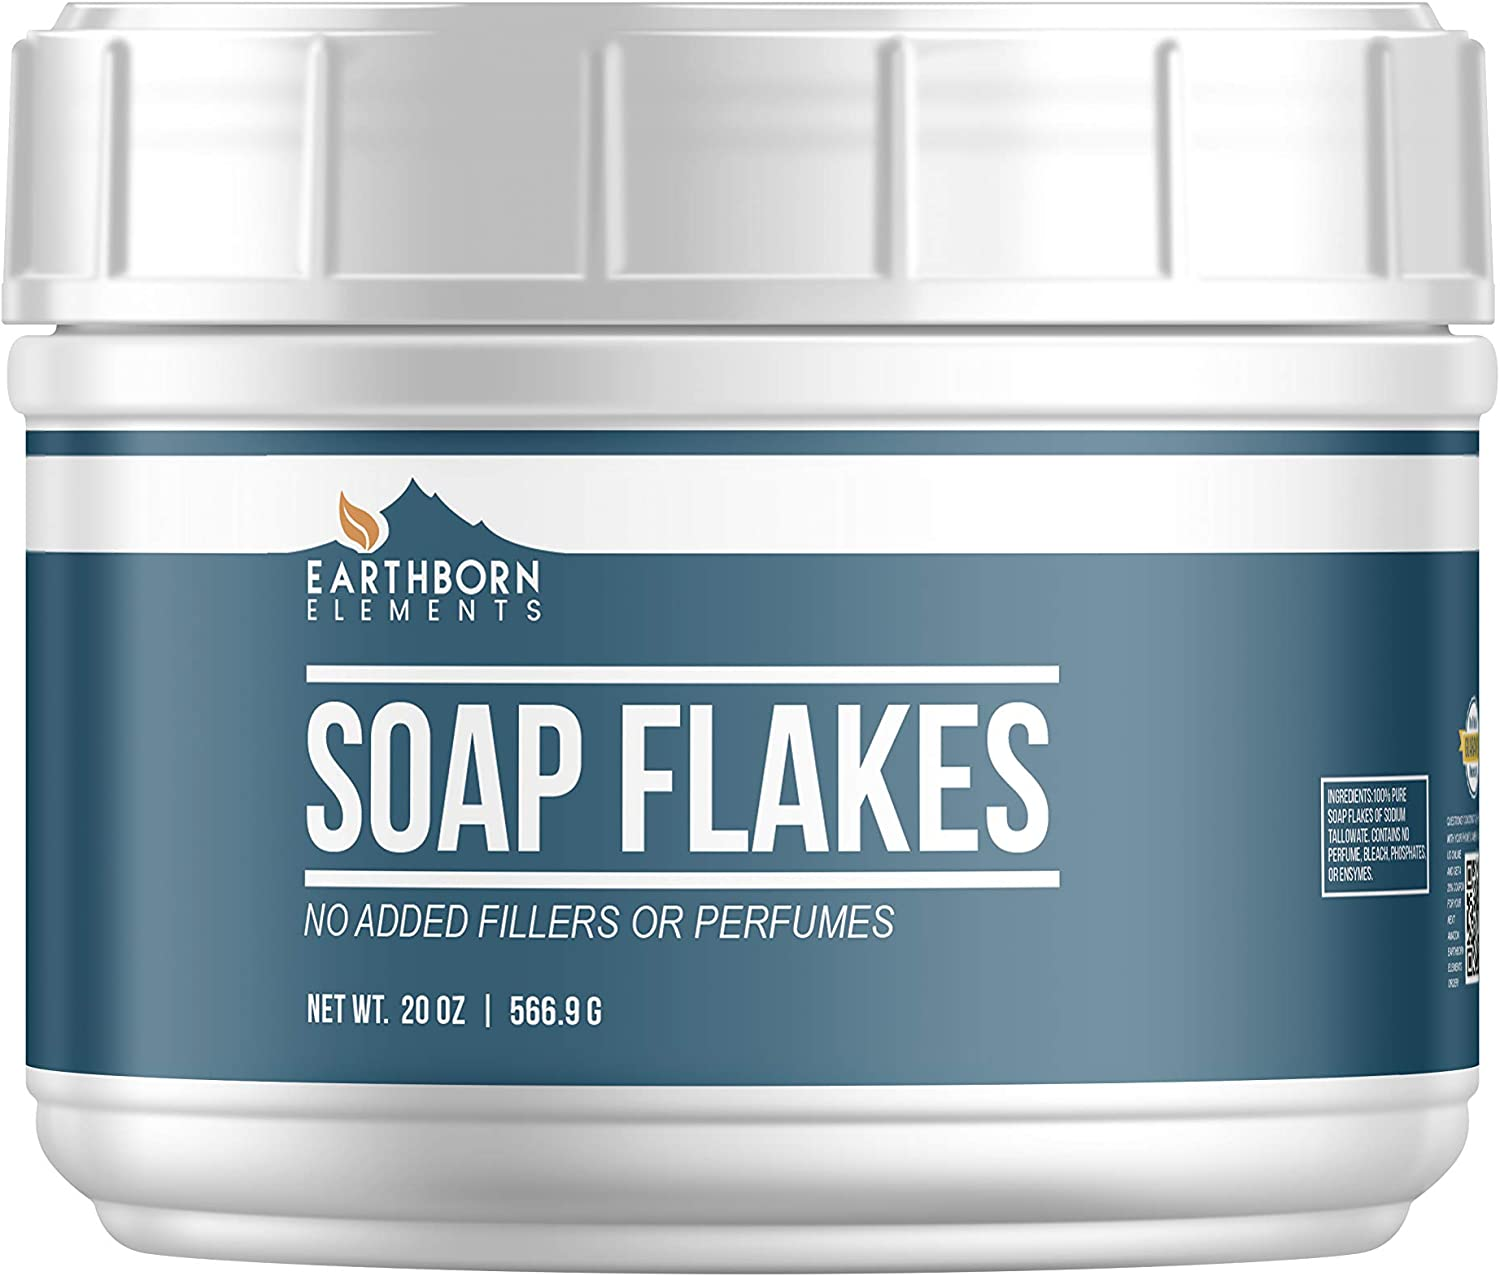 Pure Soap Flakes (20 oz) by Earthborn Elements, Resealable Tub, Ingredient to Make Liquid or Powdered Homemade Laundry Detergent for Cleaning